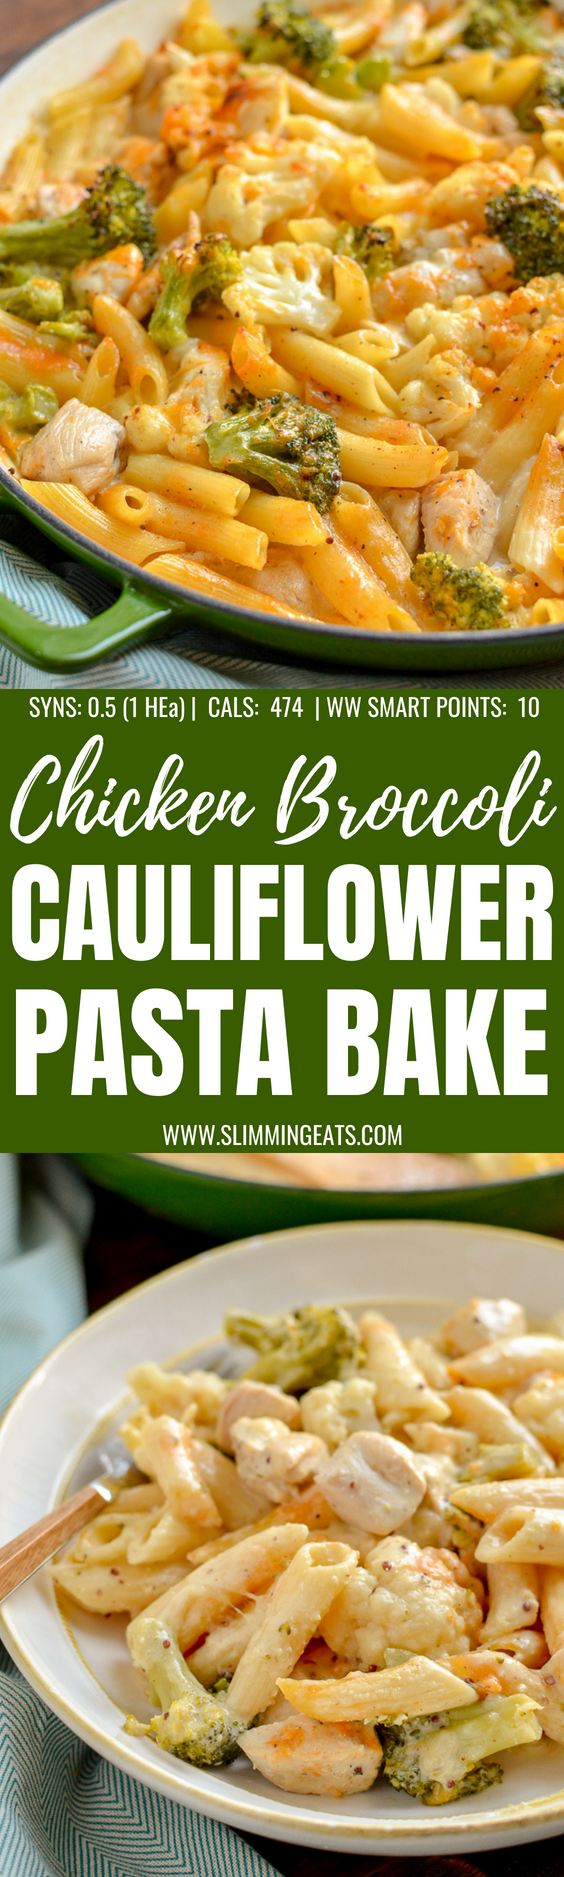 Delicious Low Syn Chicken, Broccoli and Cauliflower Pasta Bake - perfect combination for a filling family meal. | Slimming World and Weight Watchers friendly